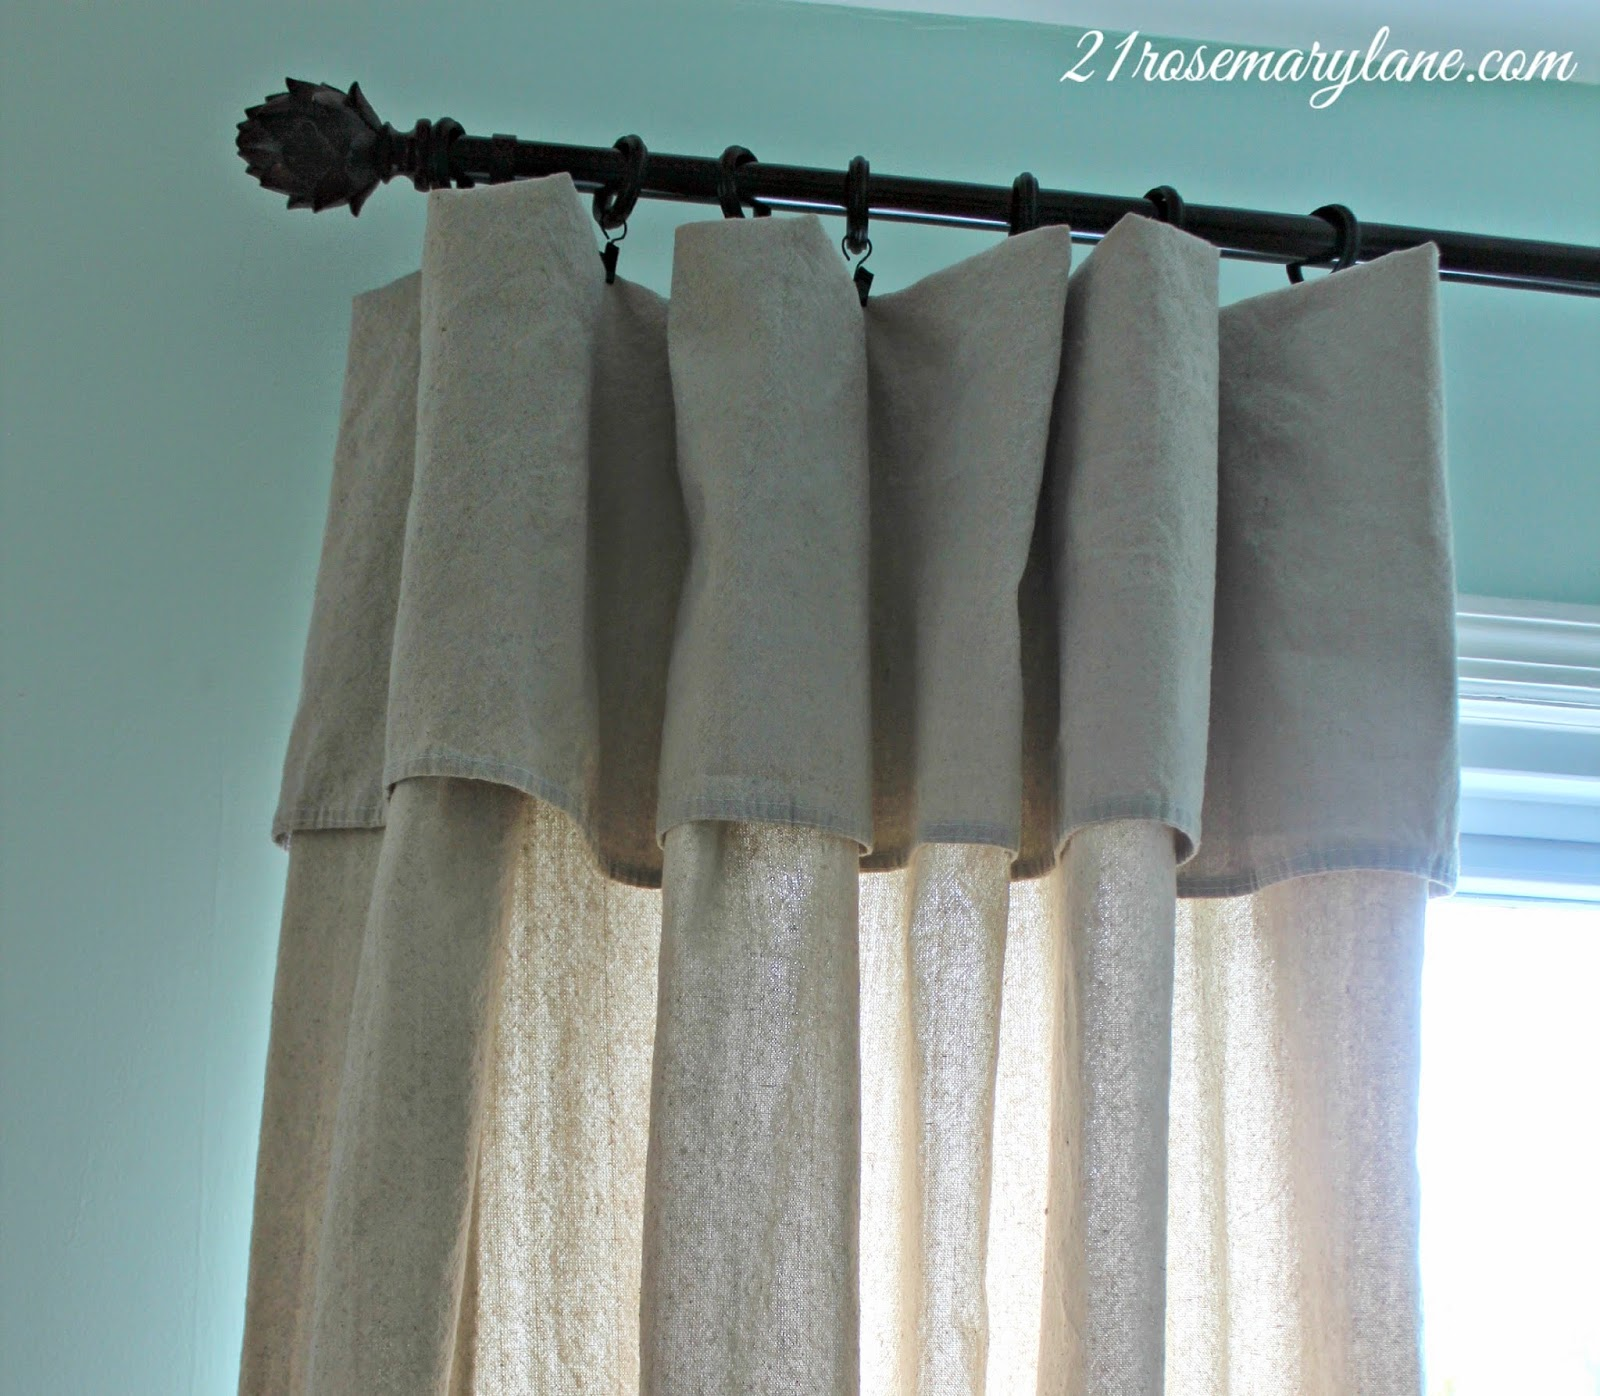 21 rosemary lane no sew drop cloth drapes they really do work